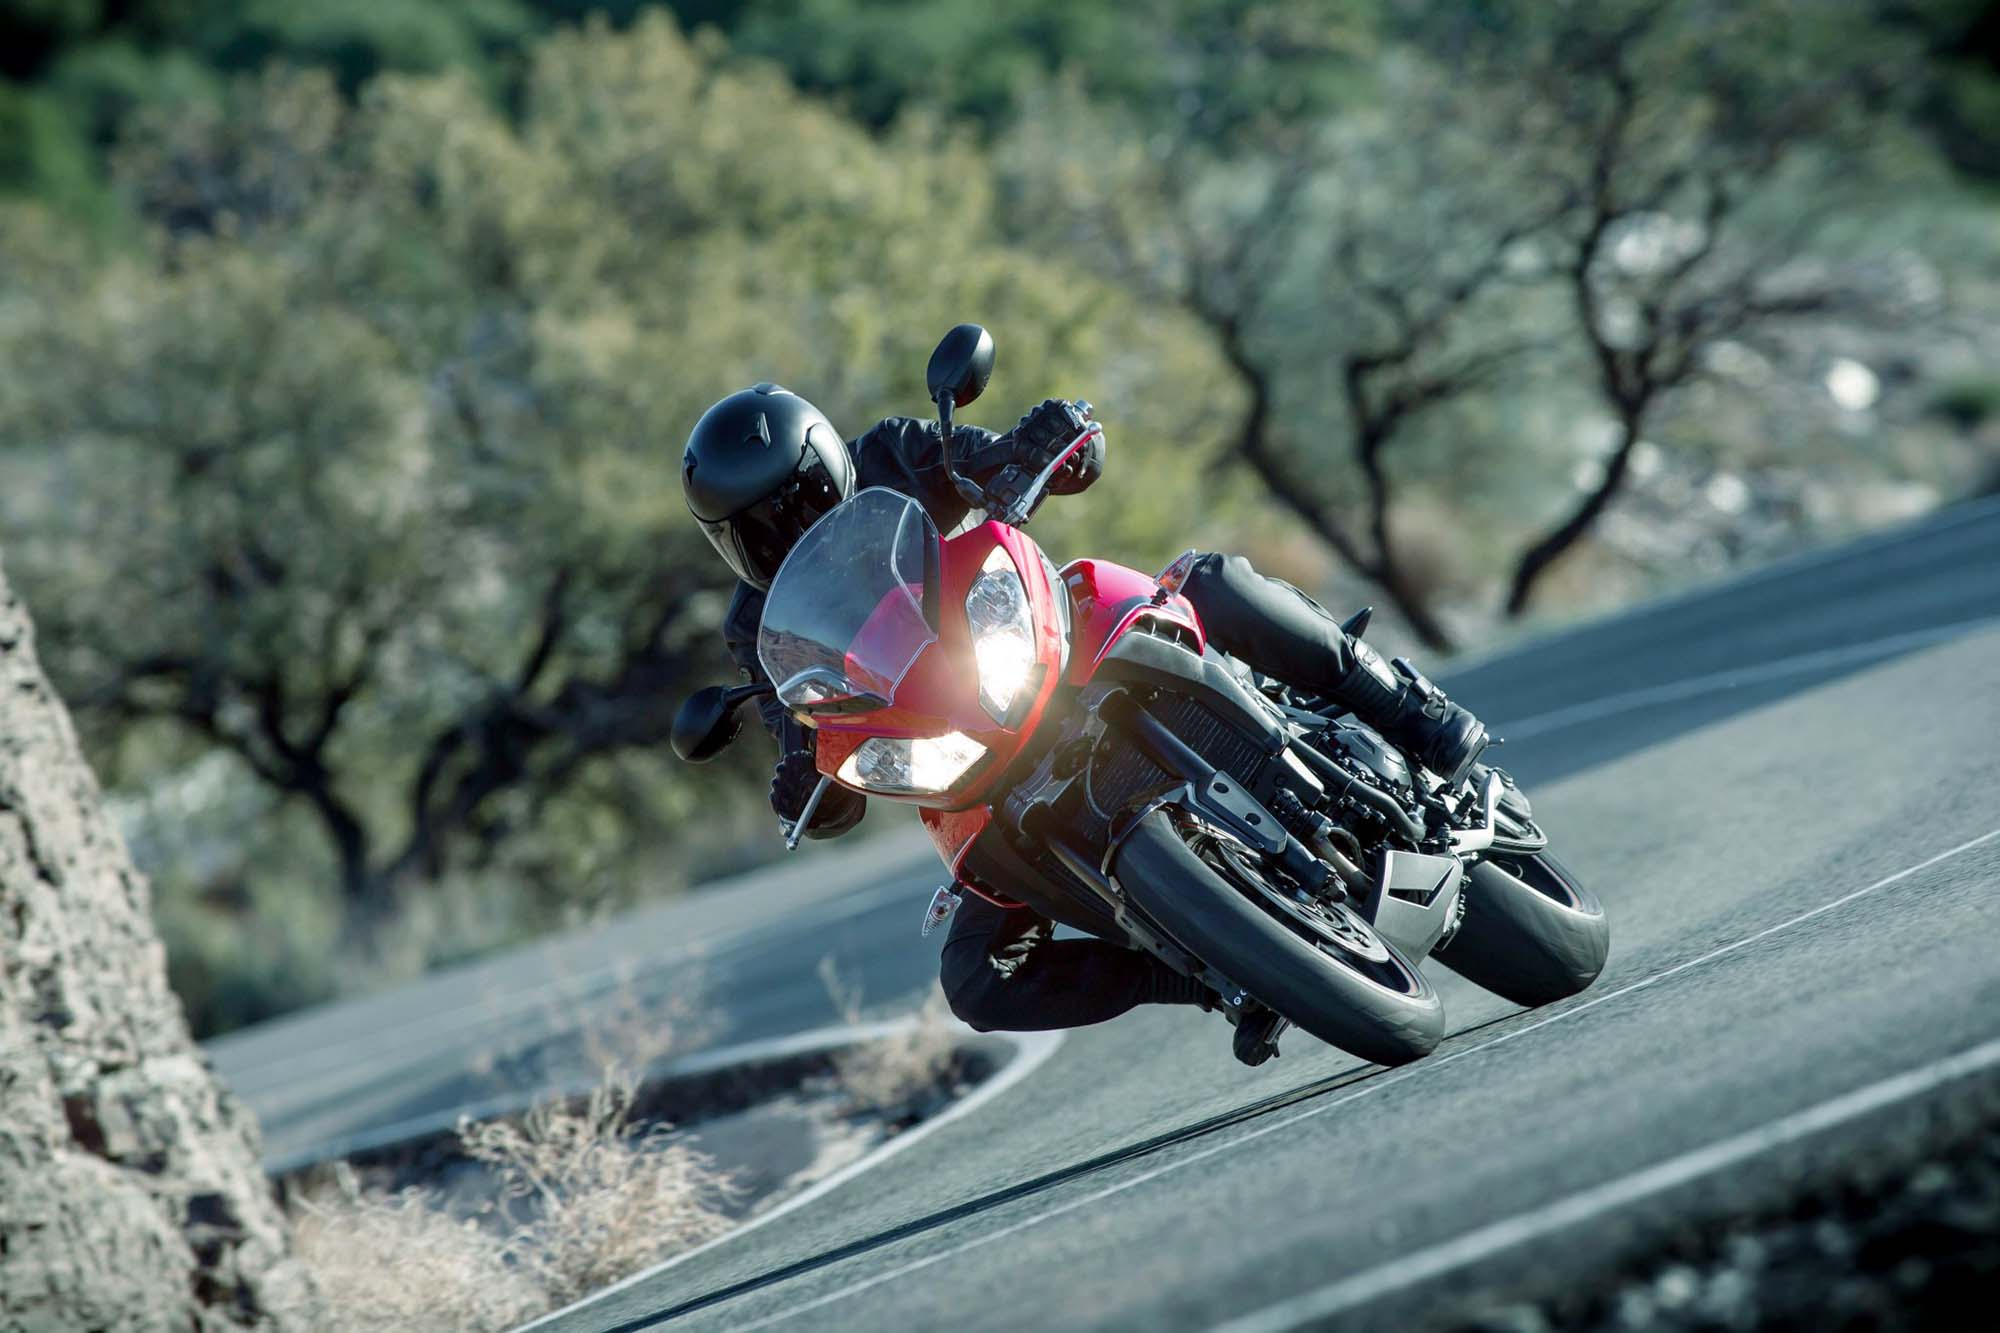 triumph-tiger-sport-1050-action